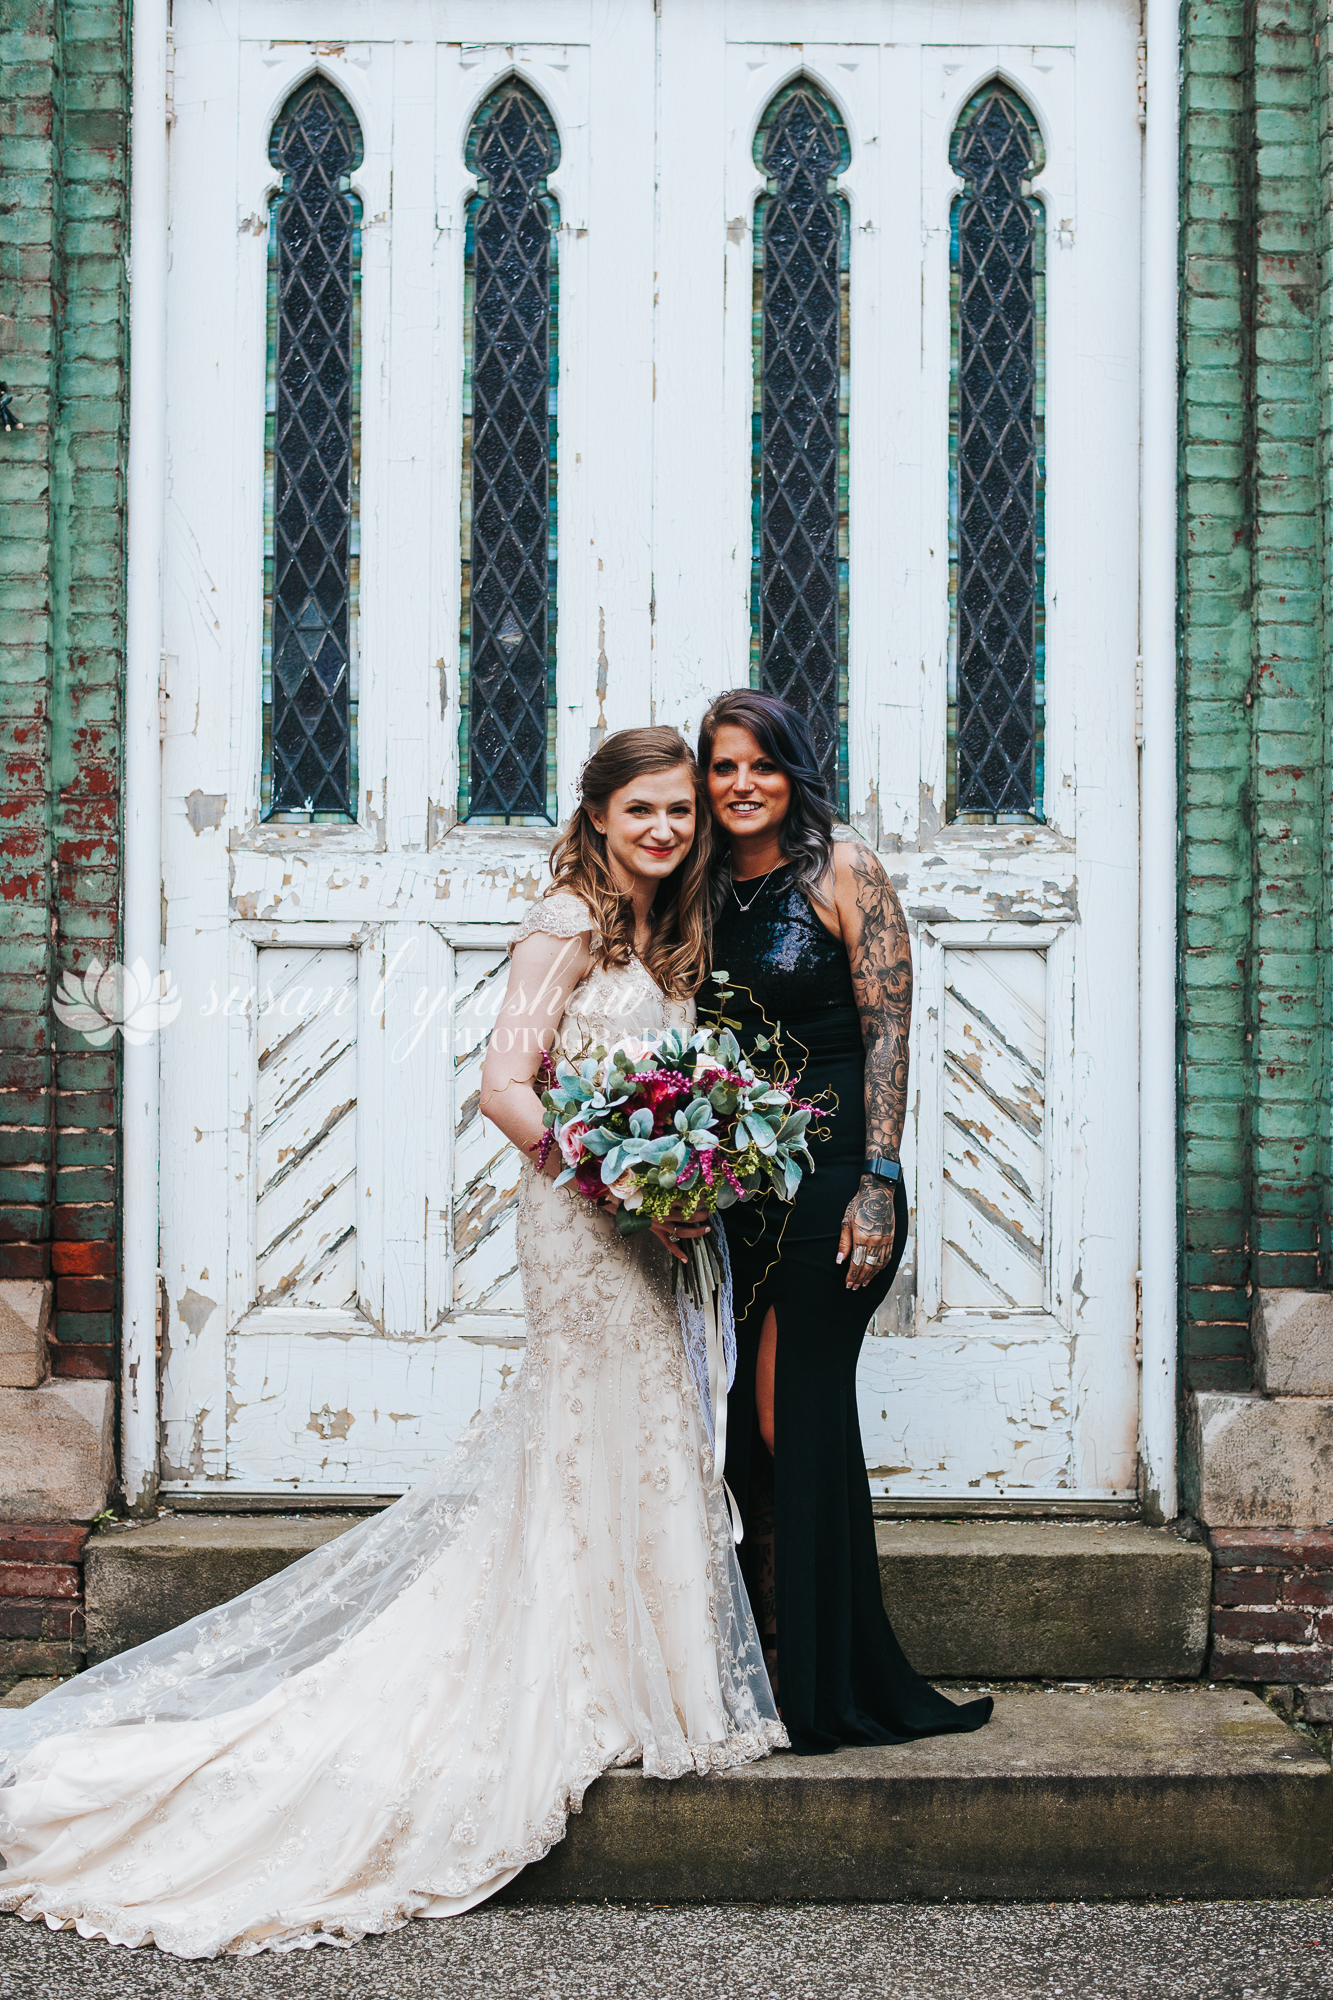 Chynna and John Wedding 05-18-2019 SLY Photography-50.jpg